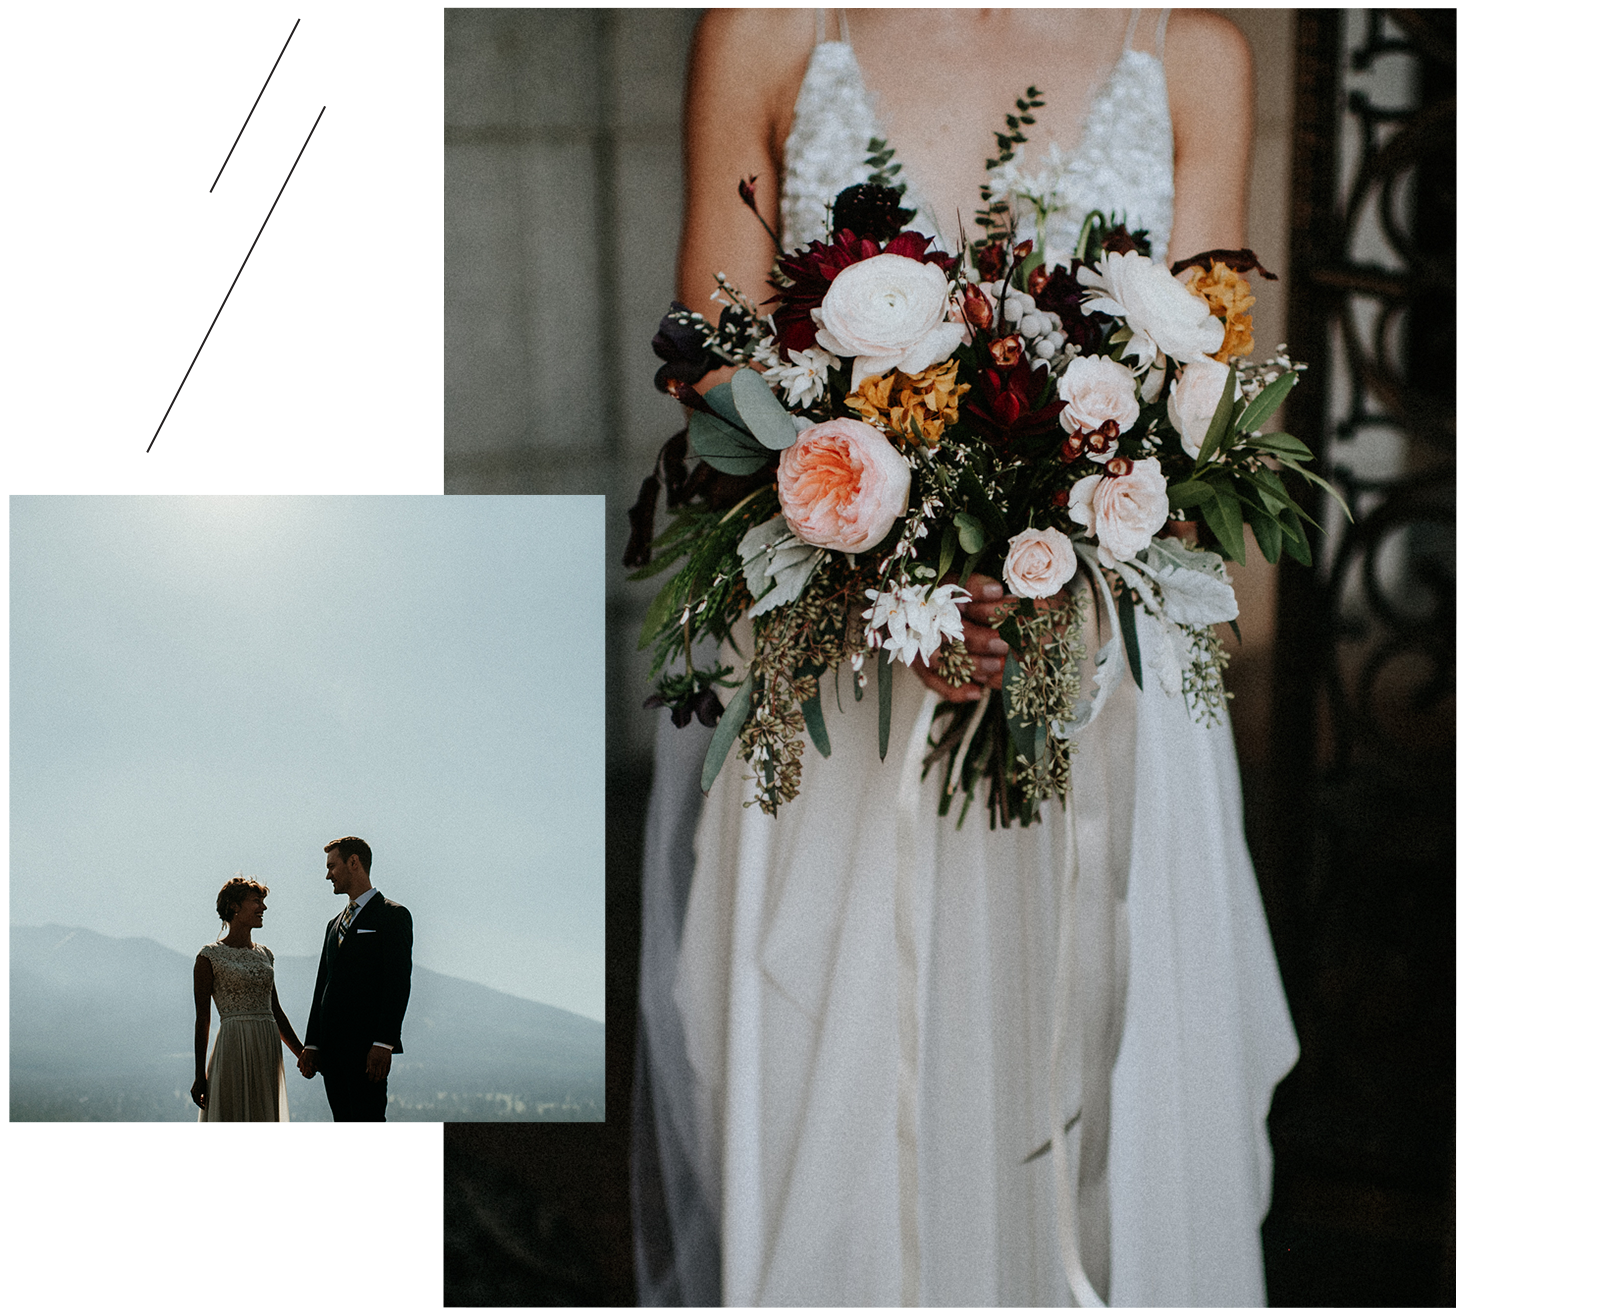 kind words - What we love most about being photographers is making connections with such wonderful people. Check out what some of our past clients have to say!